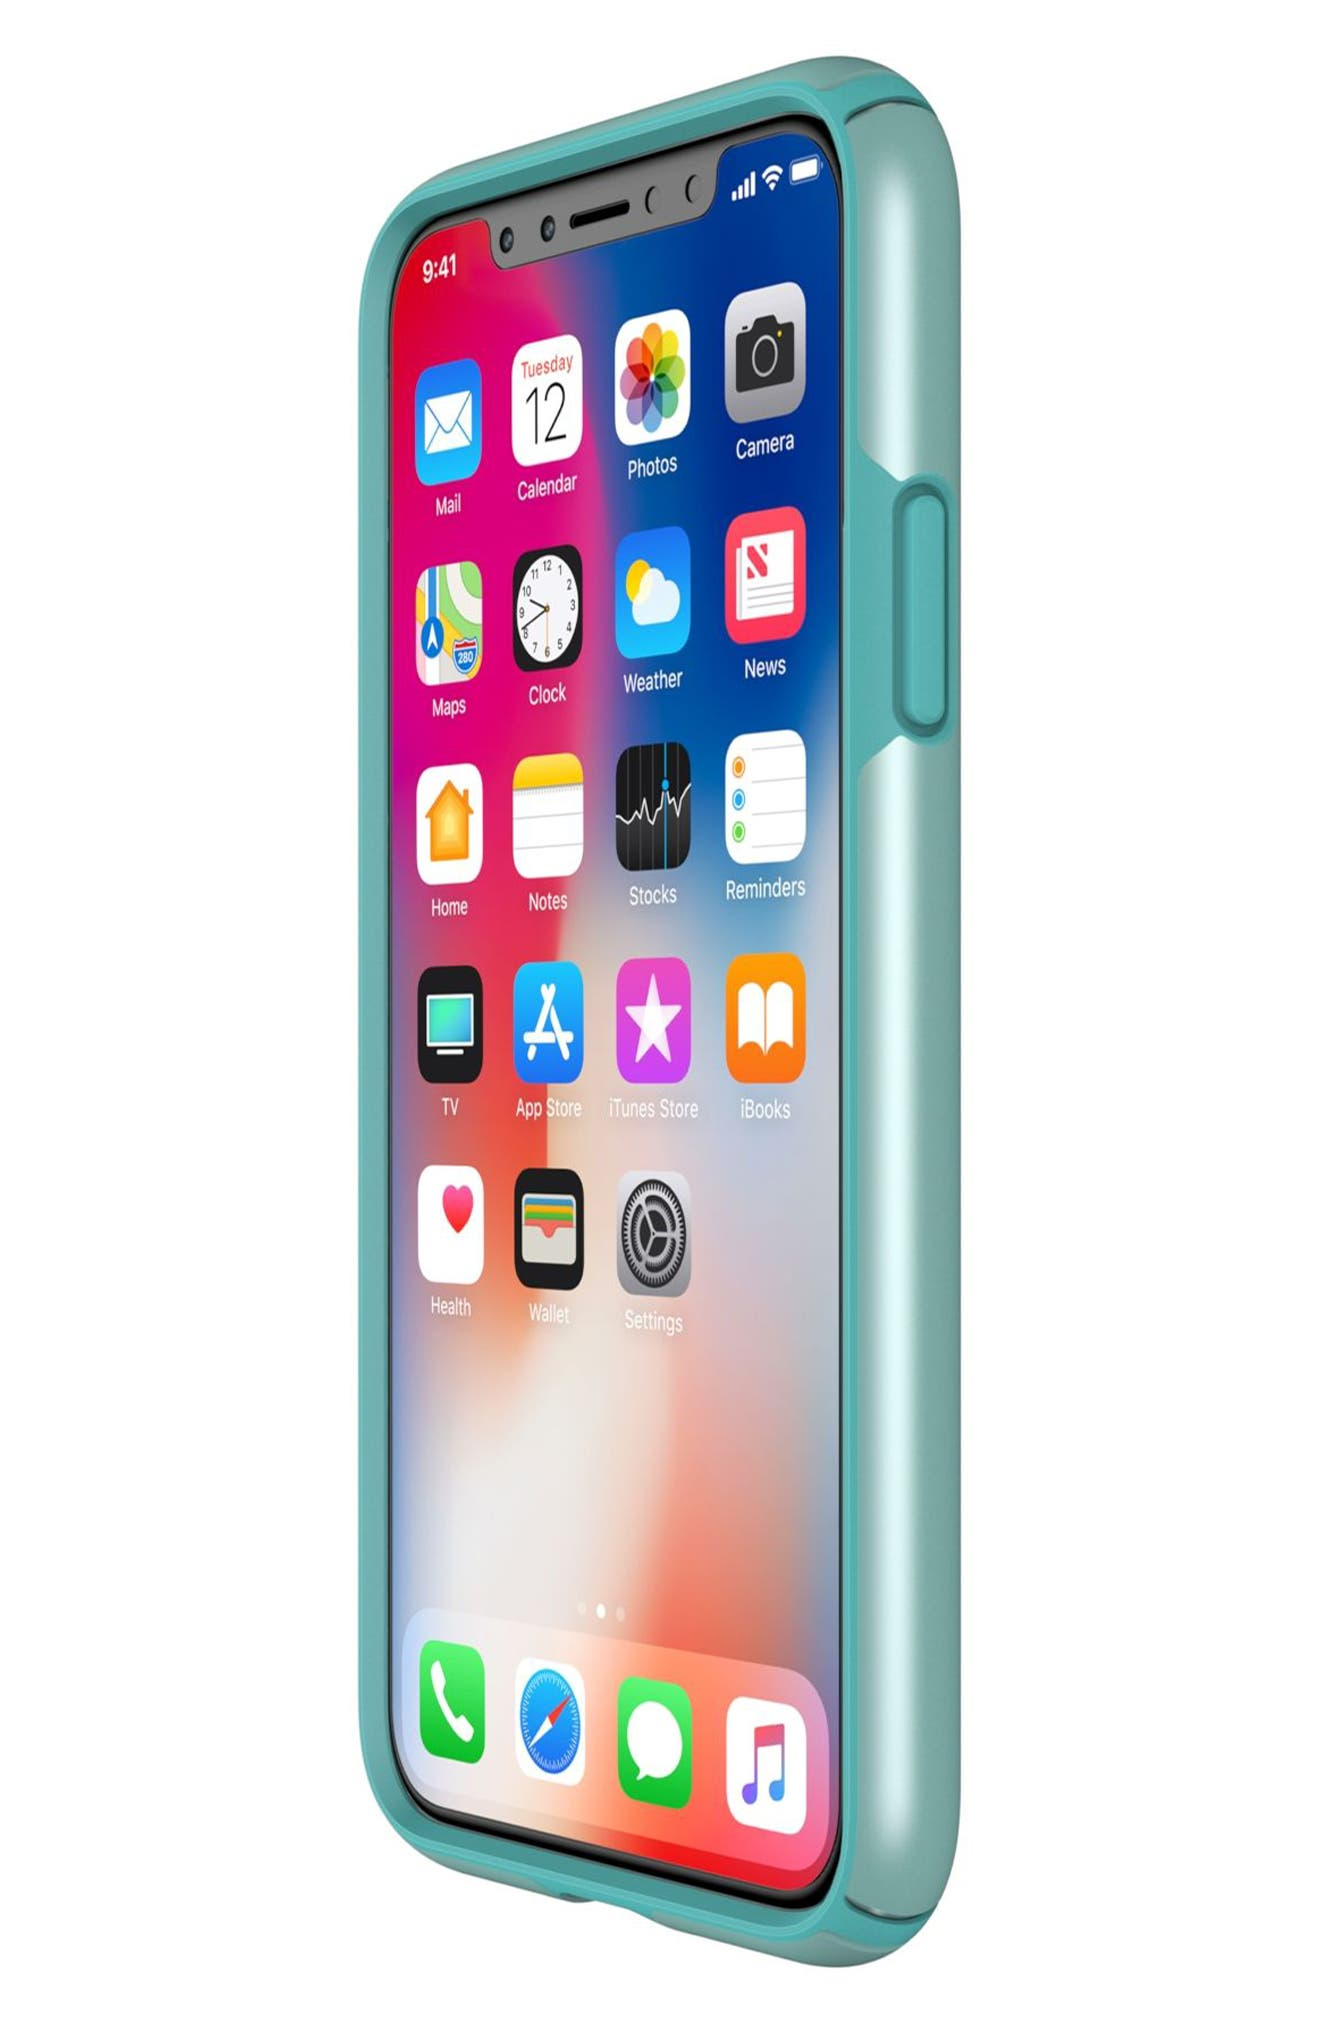 SPECK, iPhone X & Xs Case, Alternate thumbnail 4, color, PEPPERMINT GREEN / TEAL